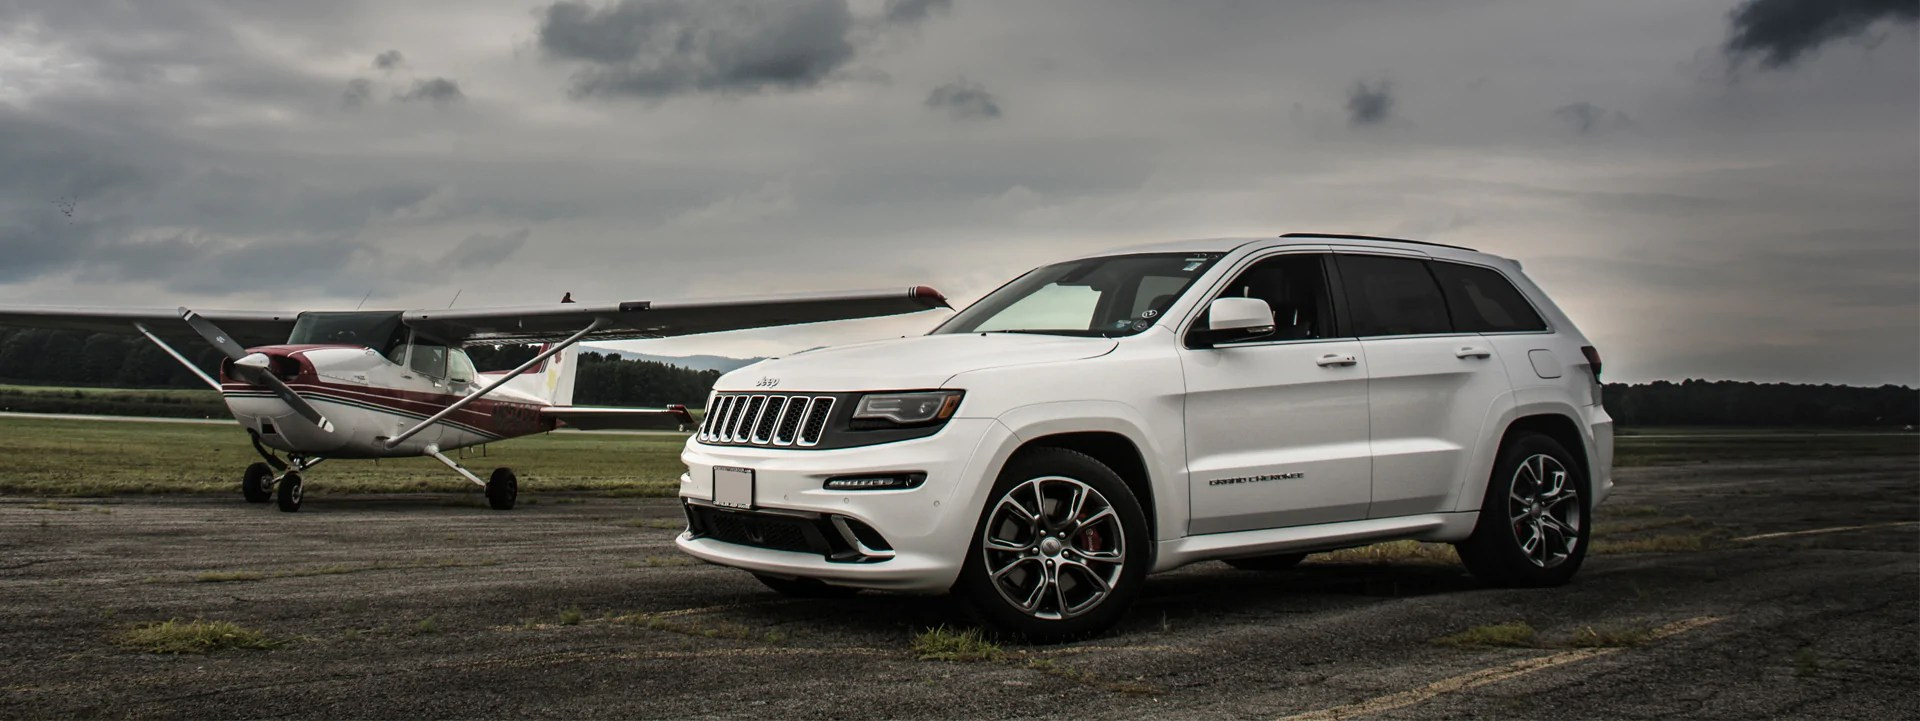 hight resolution of jeep grand cherokee accessories